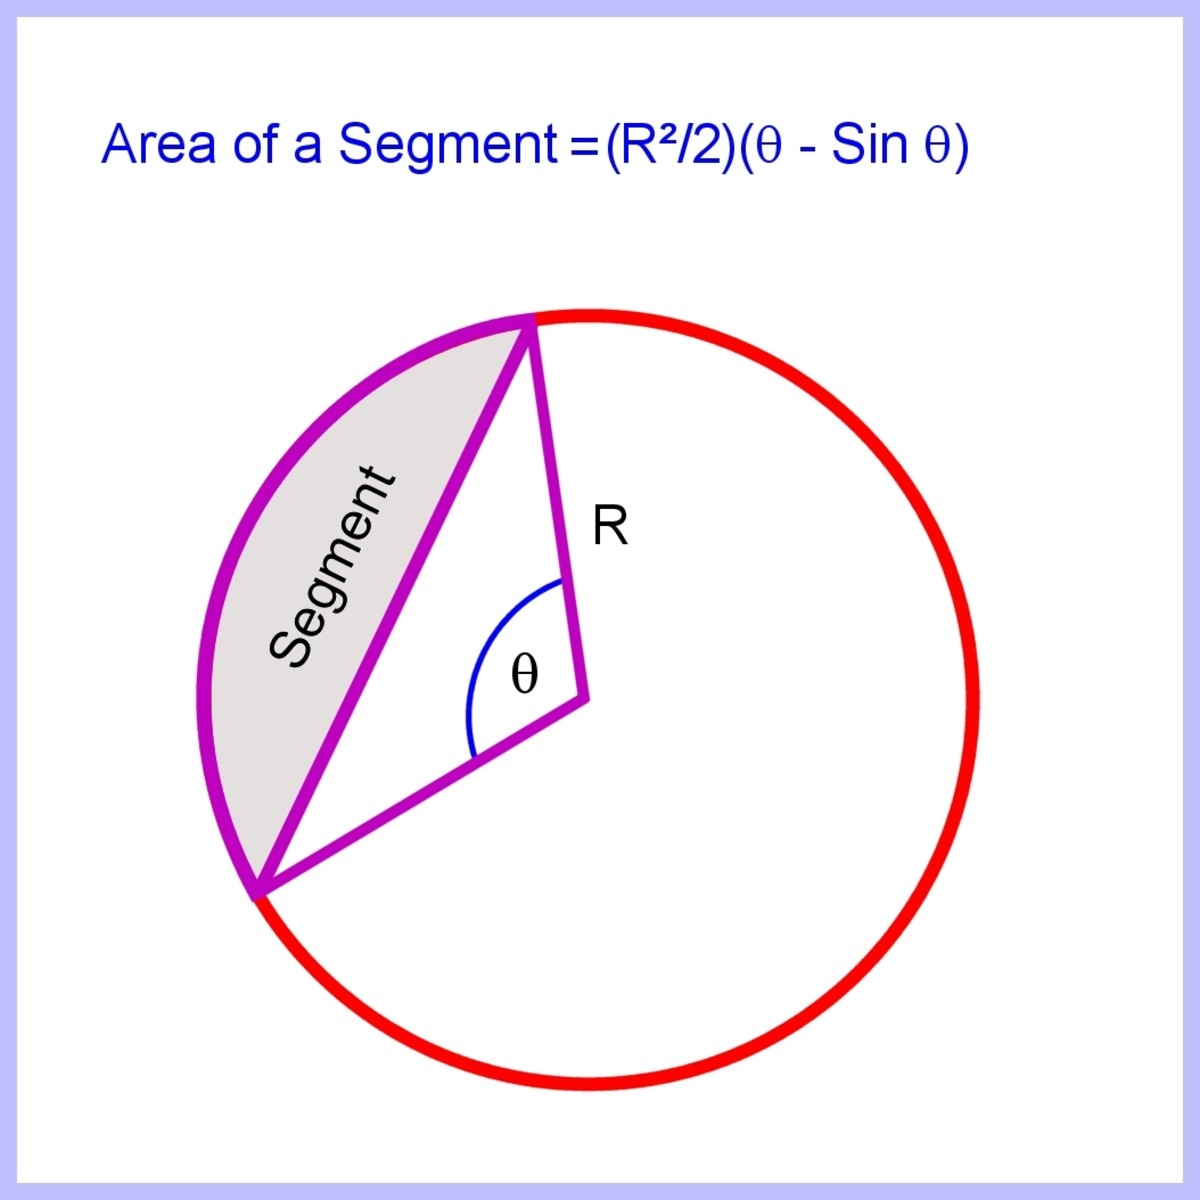 Area of a segment of a circle knowing the angle